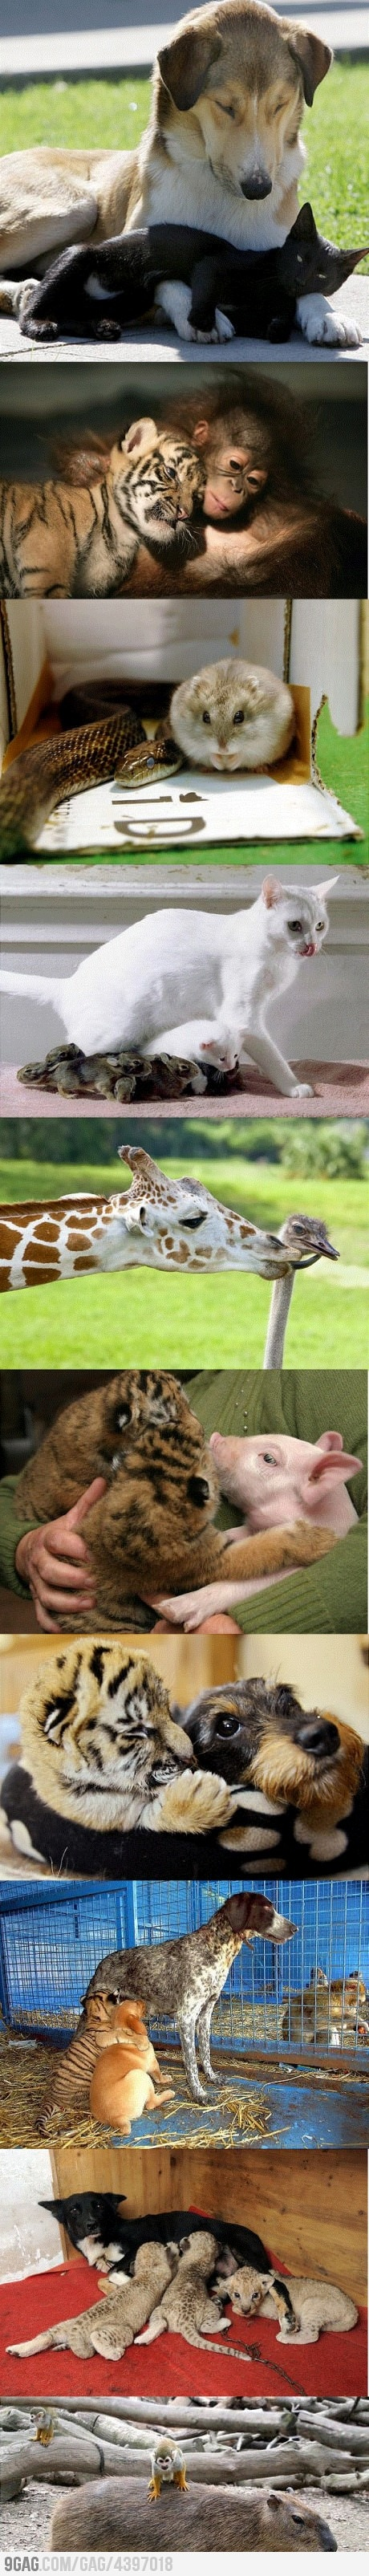 Some Unexpected Friendships: Animal Friendship, Unexpected Friendship, Unusual Animal, Cute Animals, Odd Couples, Funny Animal, Baby, Things, Tigers Cubs